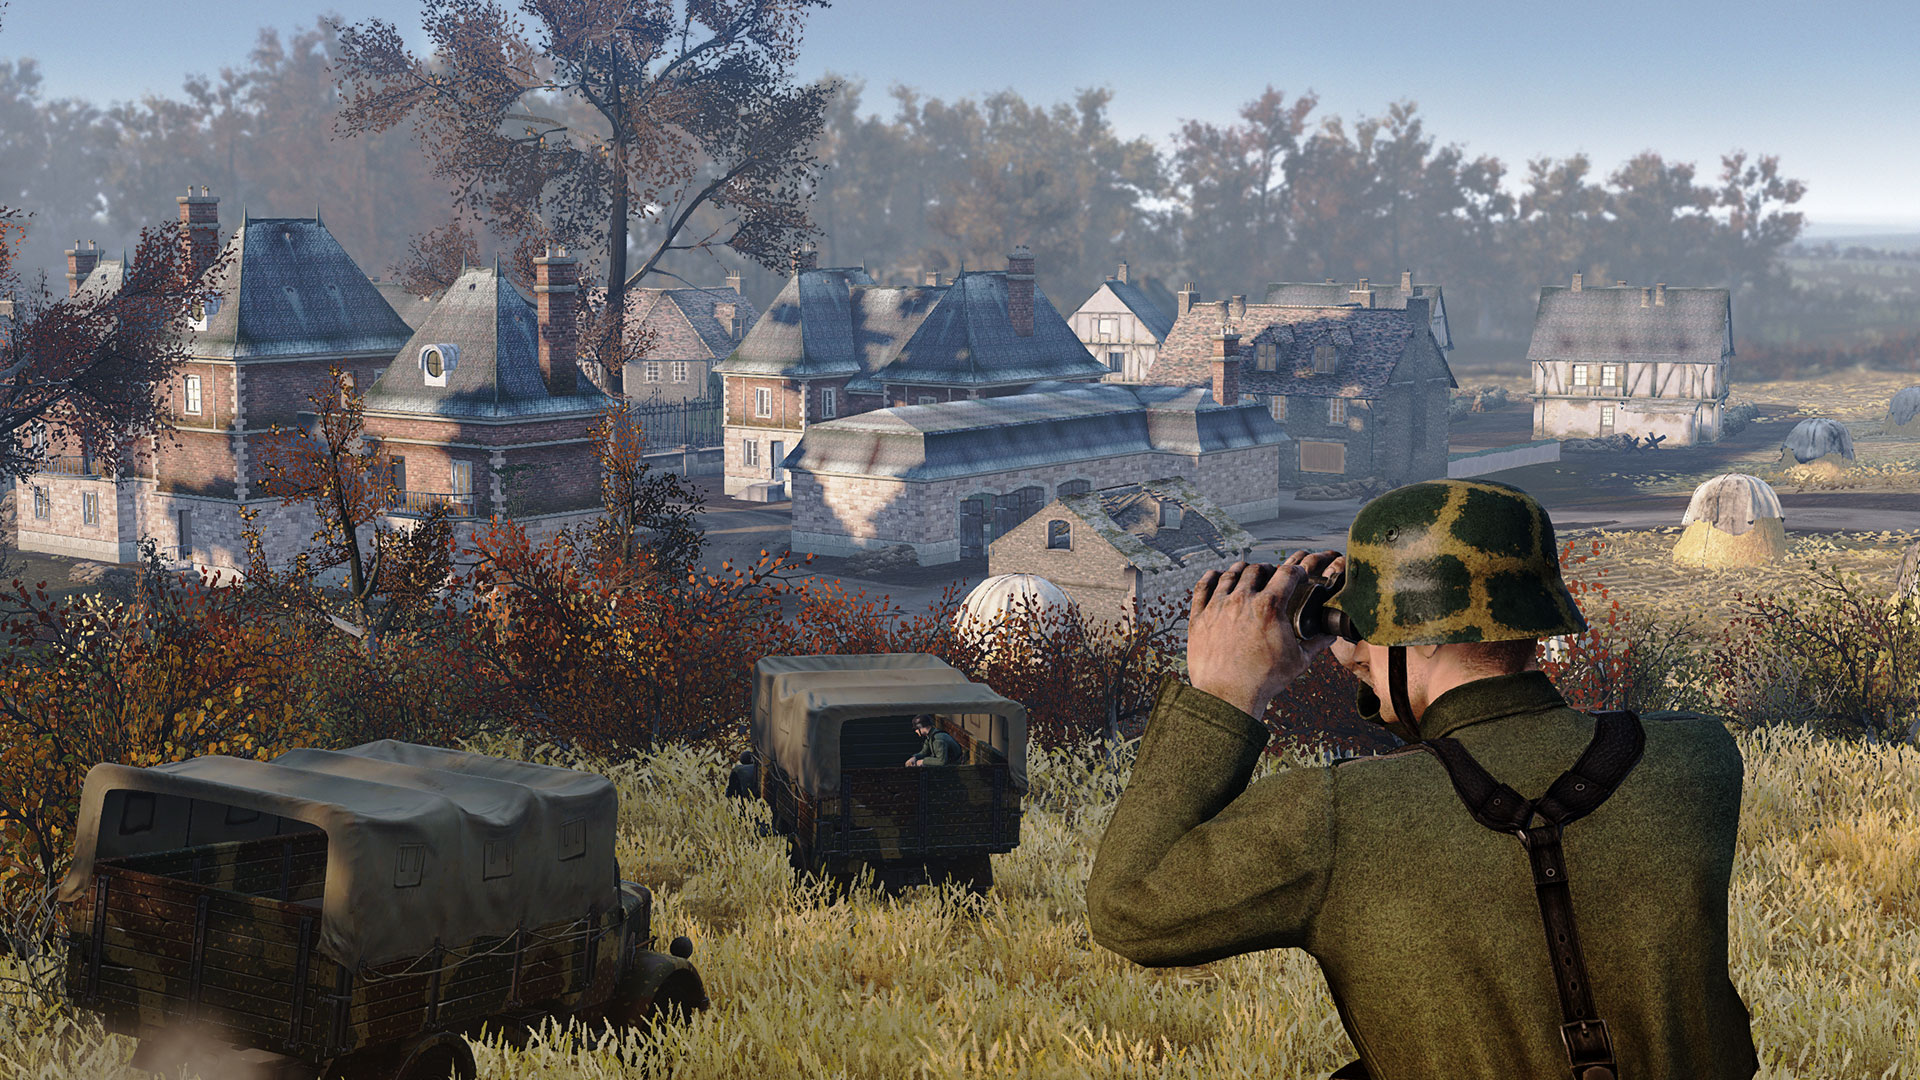 heroes and generals matchmaking slowhow to make a guy your dating want you more